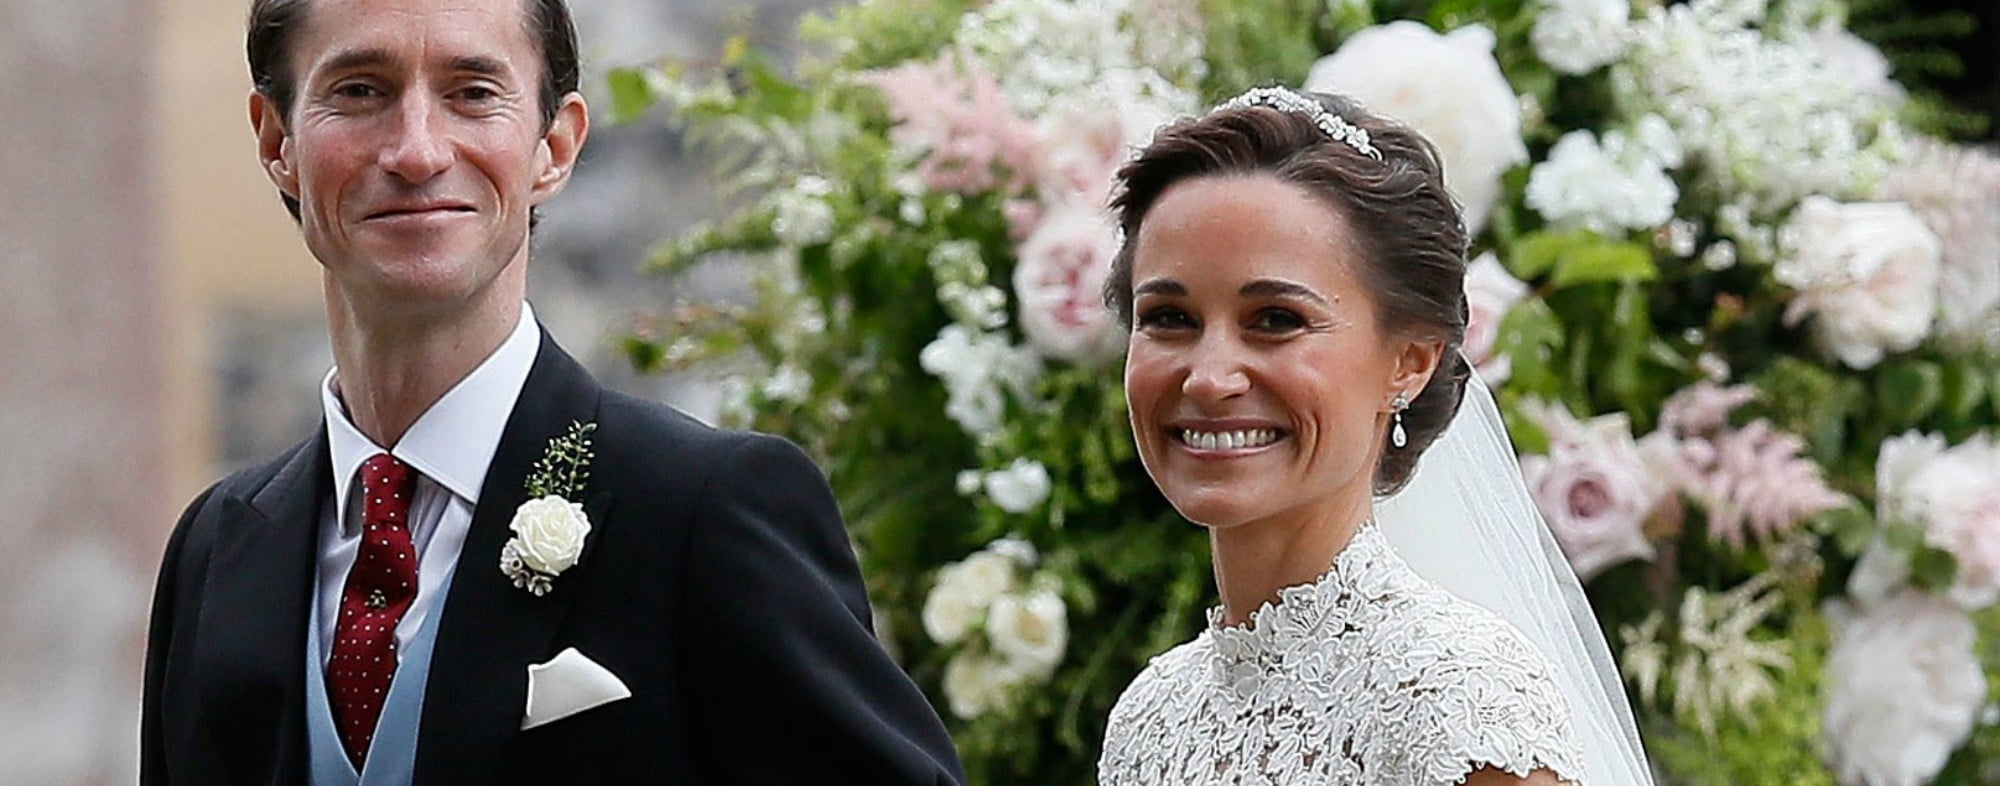 Pippa Middleton 39 S Wedding Sees Celebs And Royalty Come Together Celebrity Images